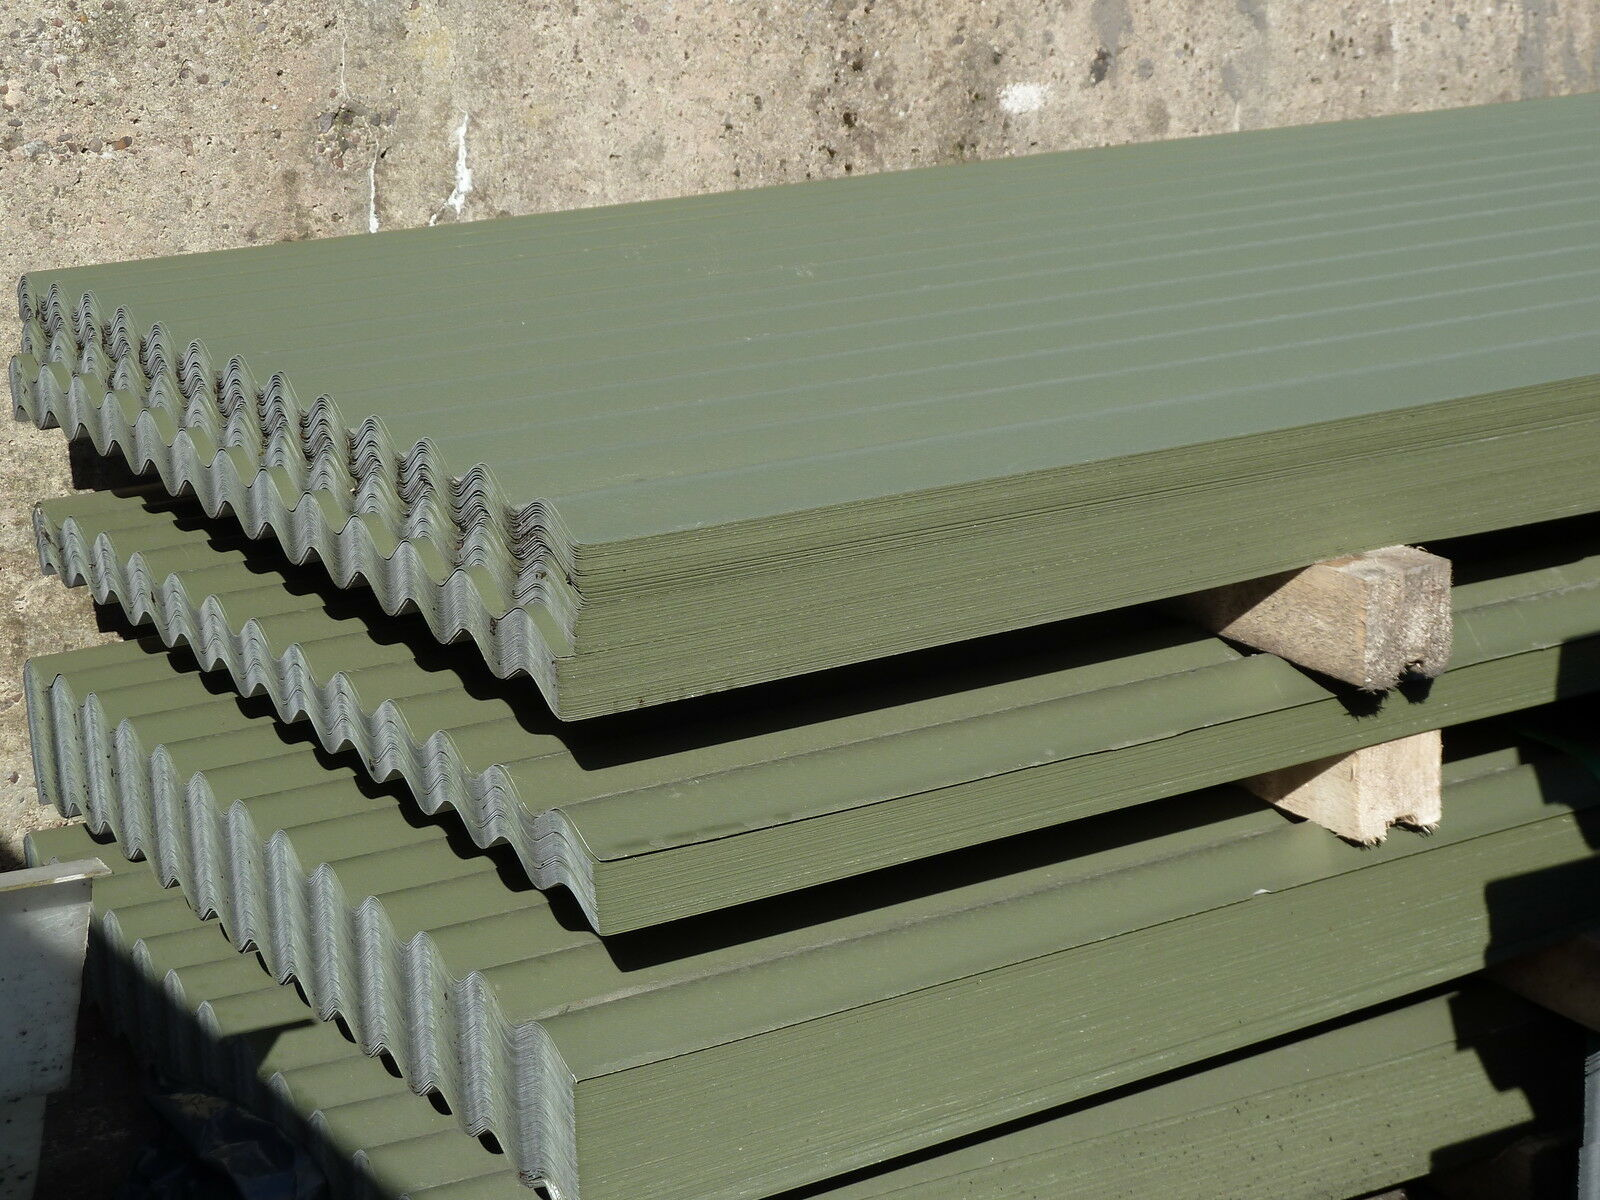 Corrugated Roof Sheets Olive Green Pvc Coated Metal Steel